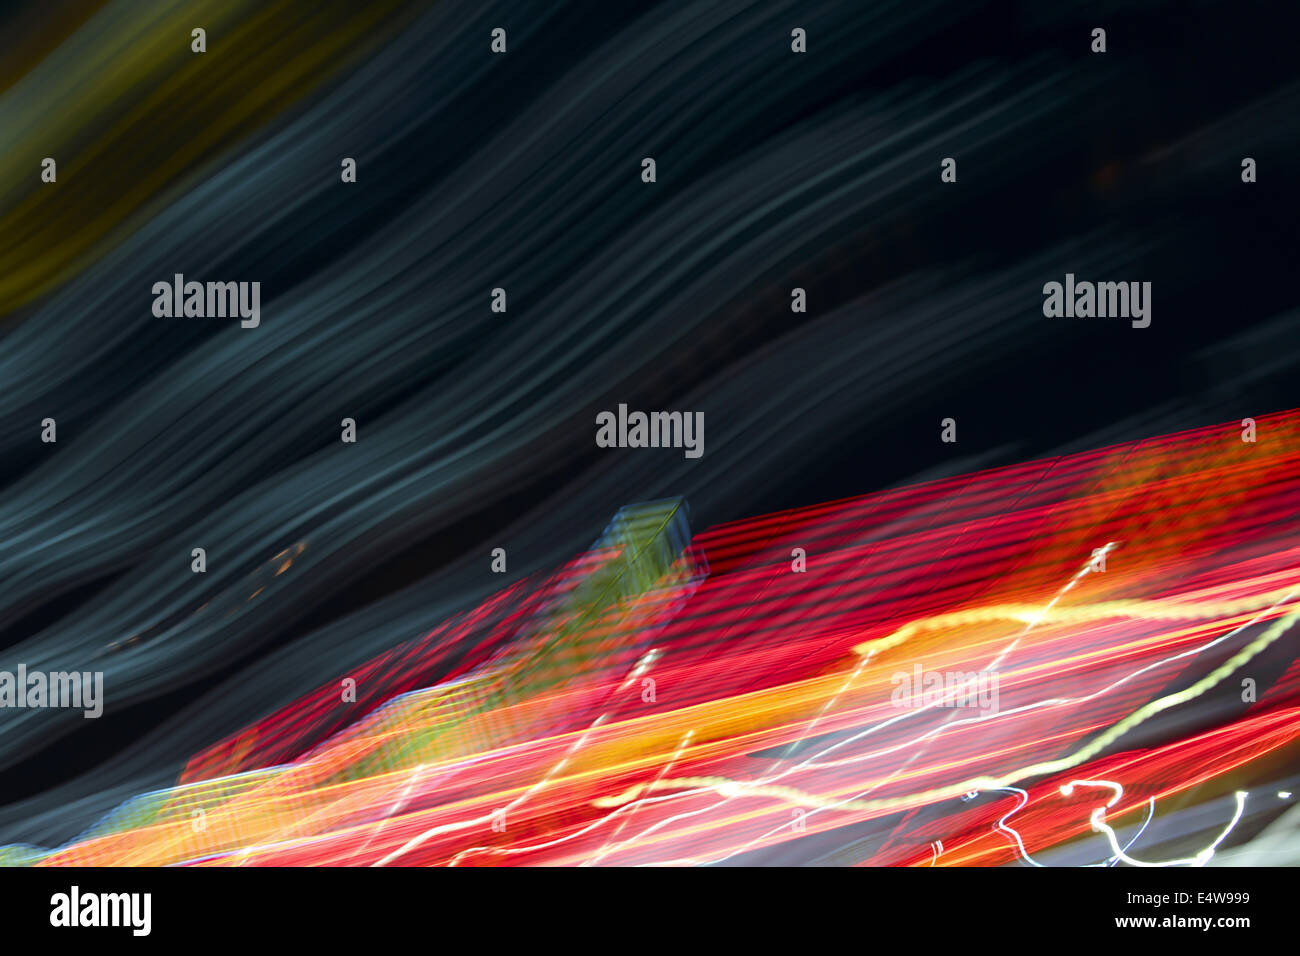 abstract background color stripes and stains - Stock Image